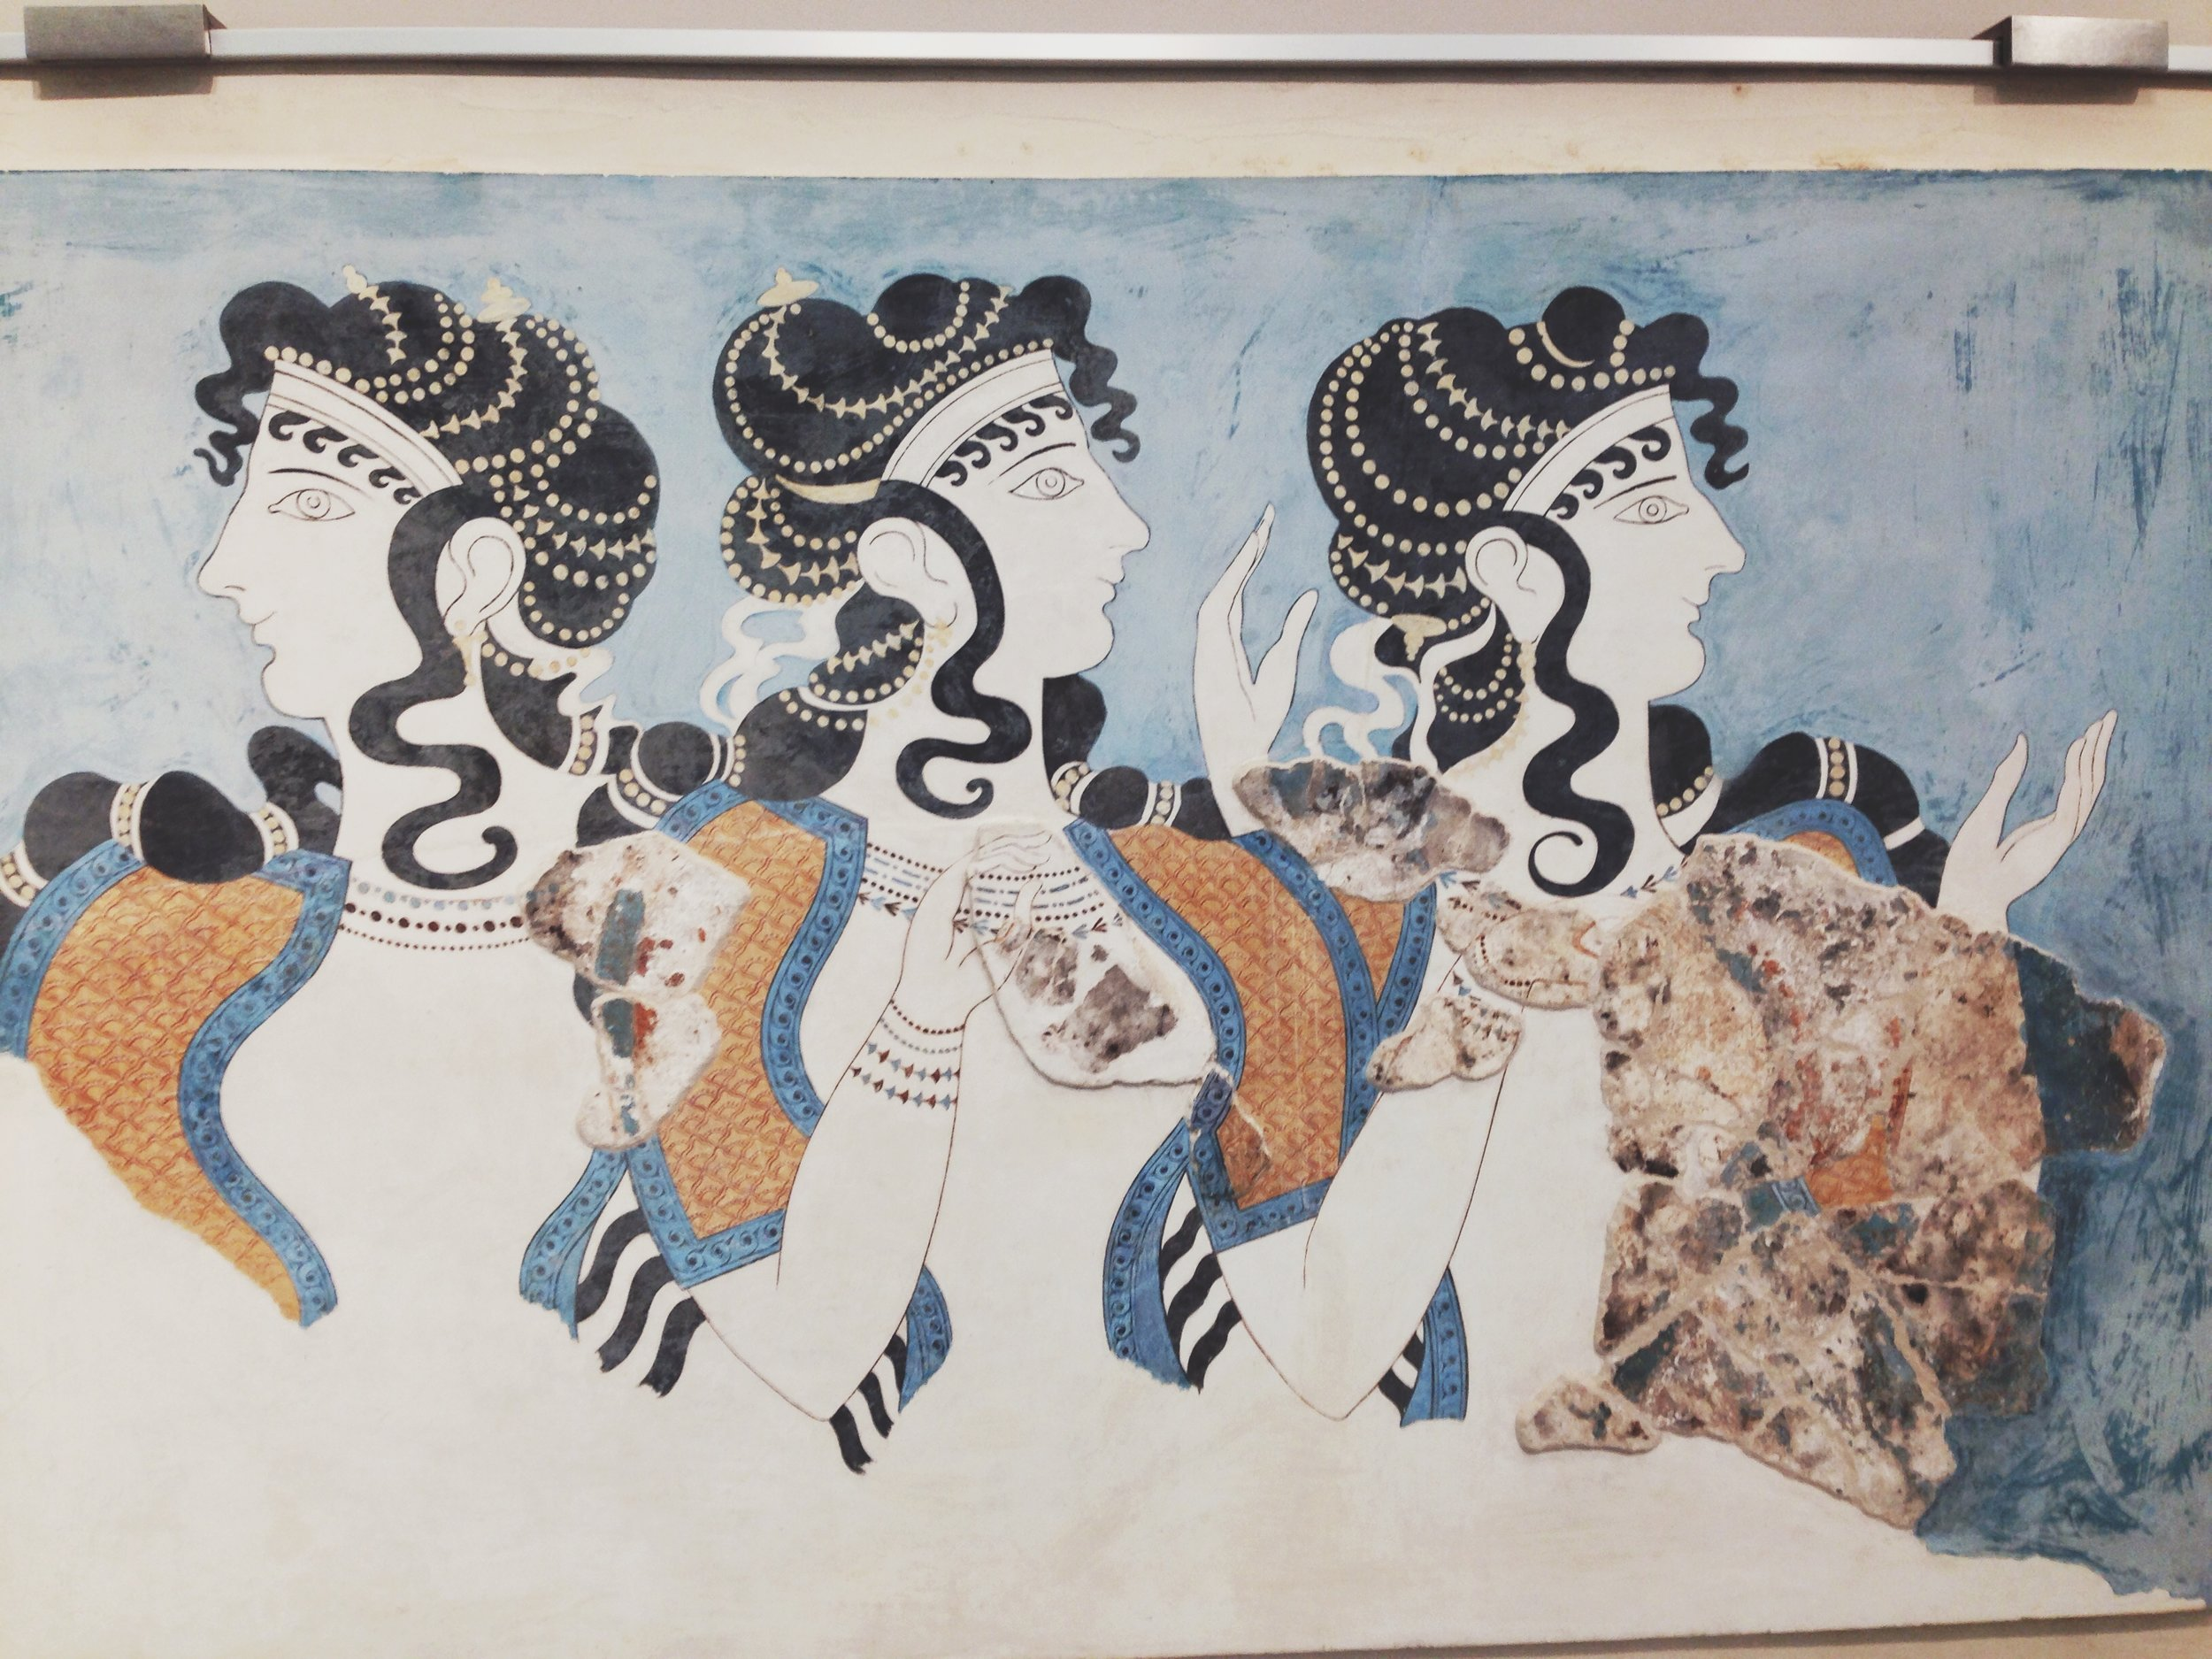 Wall Frescos from Knossos in Crete (Picture by Katherine Poseidon)